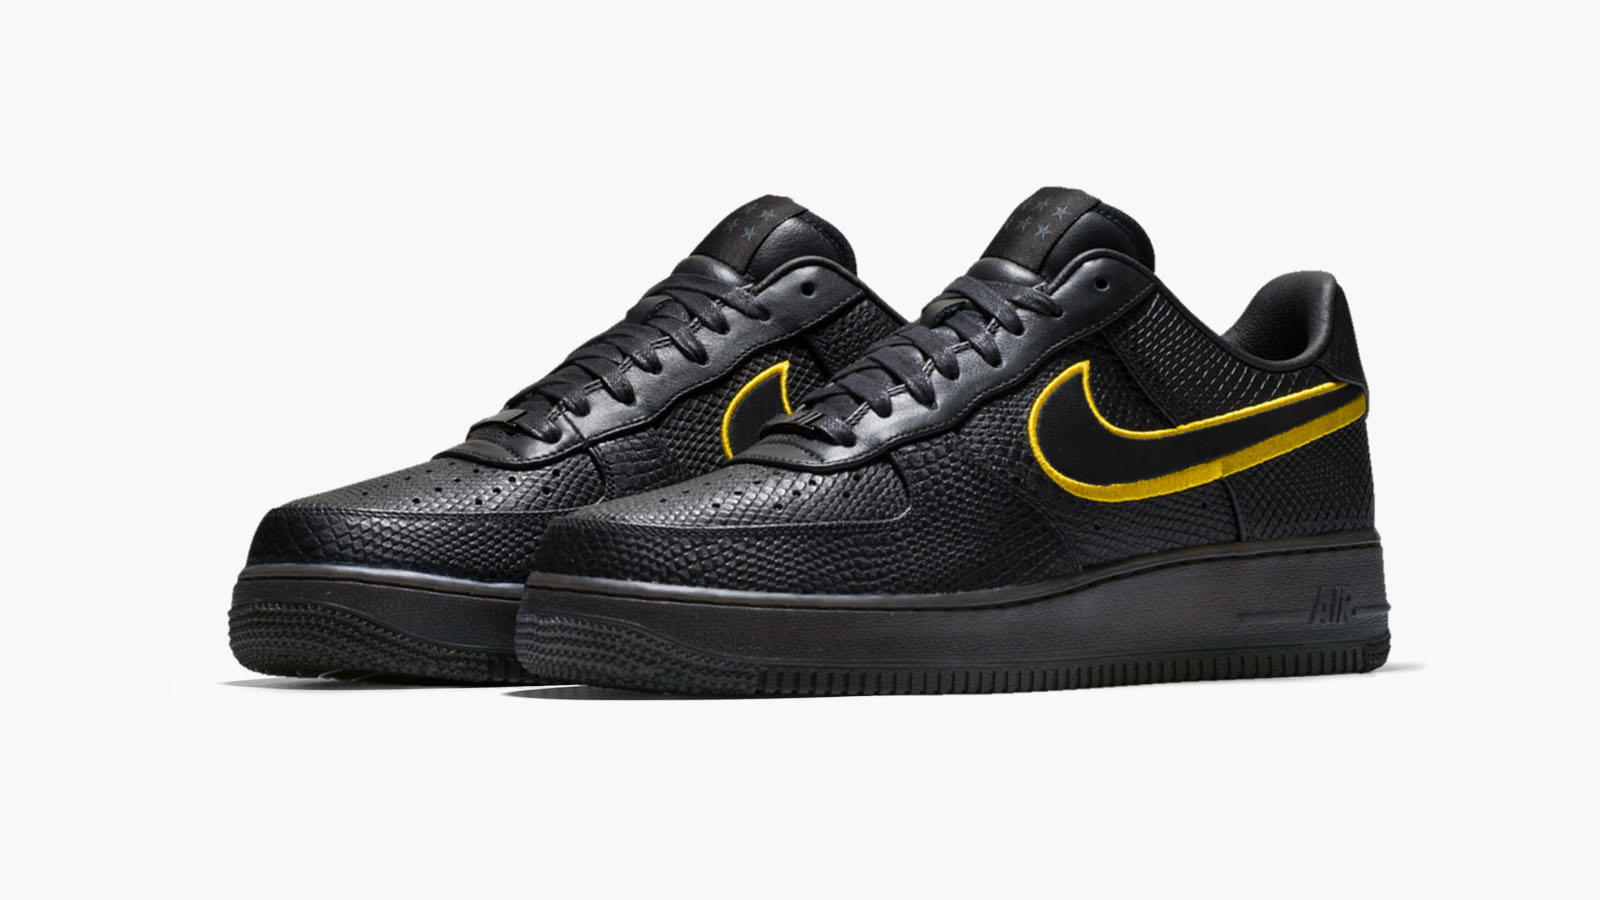 Kobe's jersey retirement is celebrated with this special Air Force 1 Low